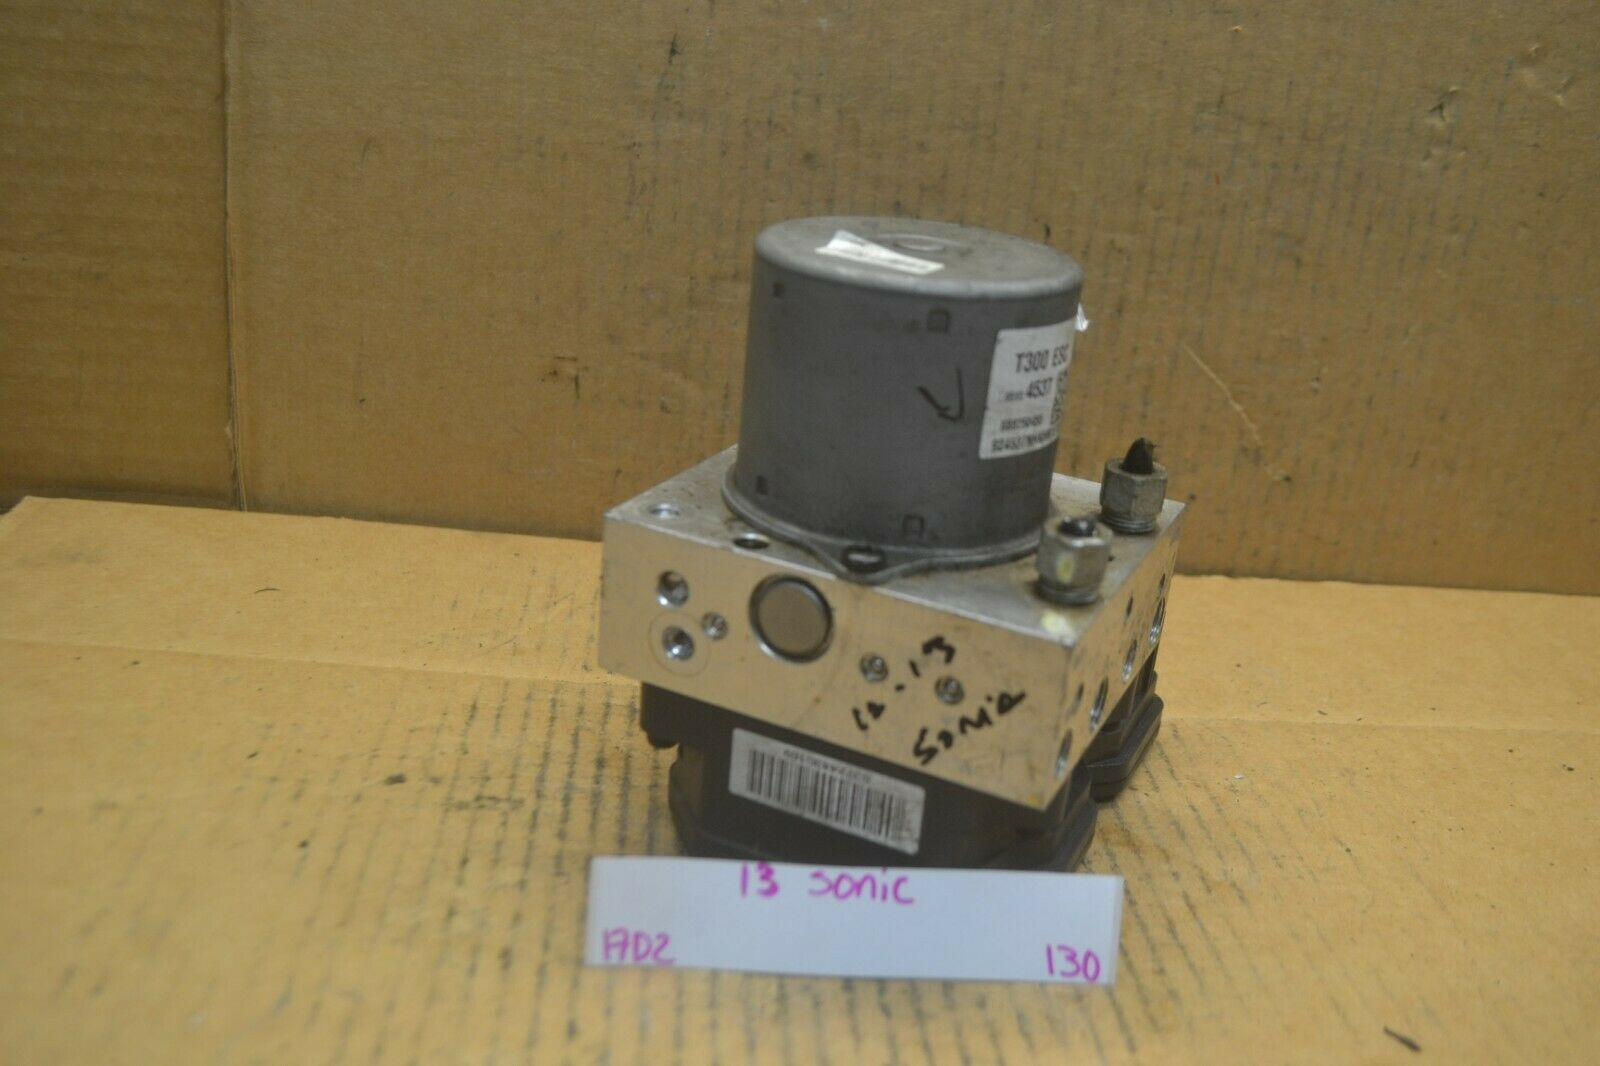 Primary image for 2012 2013 Chevrolet Sonic ABS Pump Control OEM 95104537 Module 130-17d2